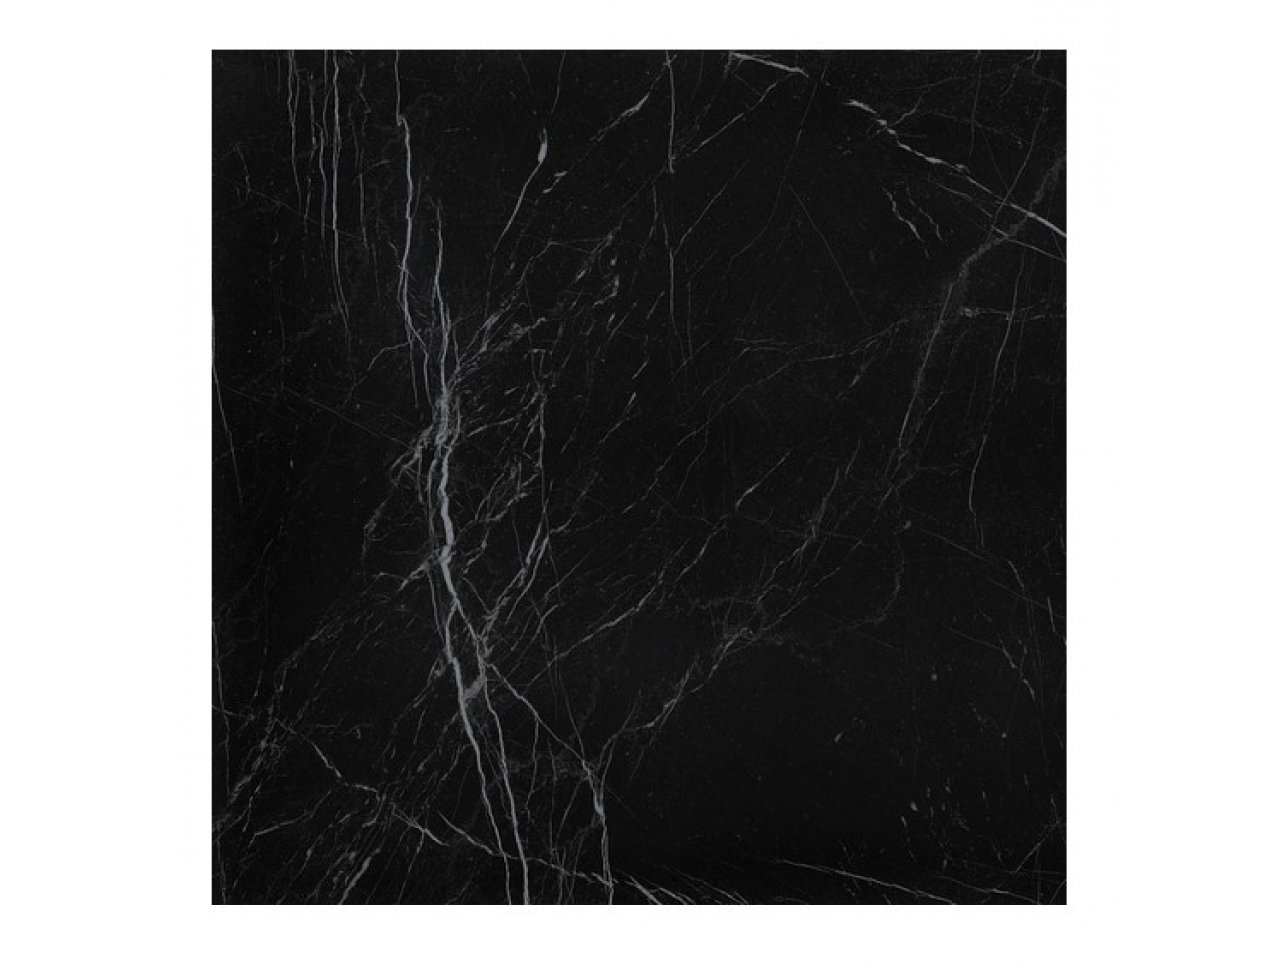 Напольная плитка FAP Roma Diamond Nero Reale Brillante 60 x 60 см, Арт. fNEU